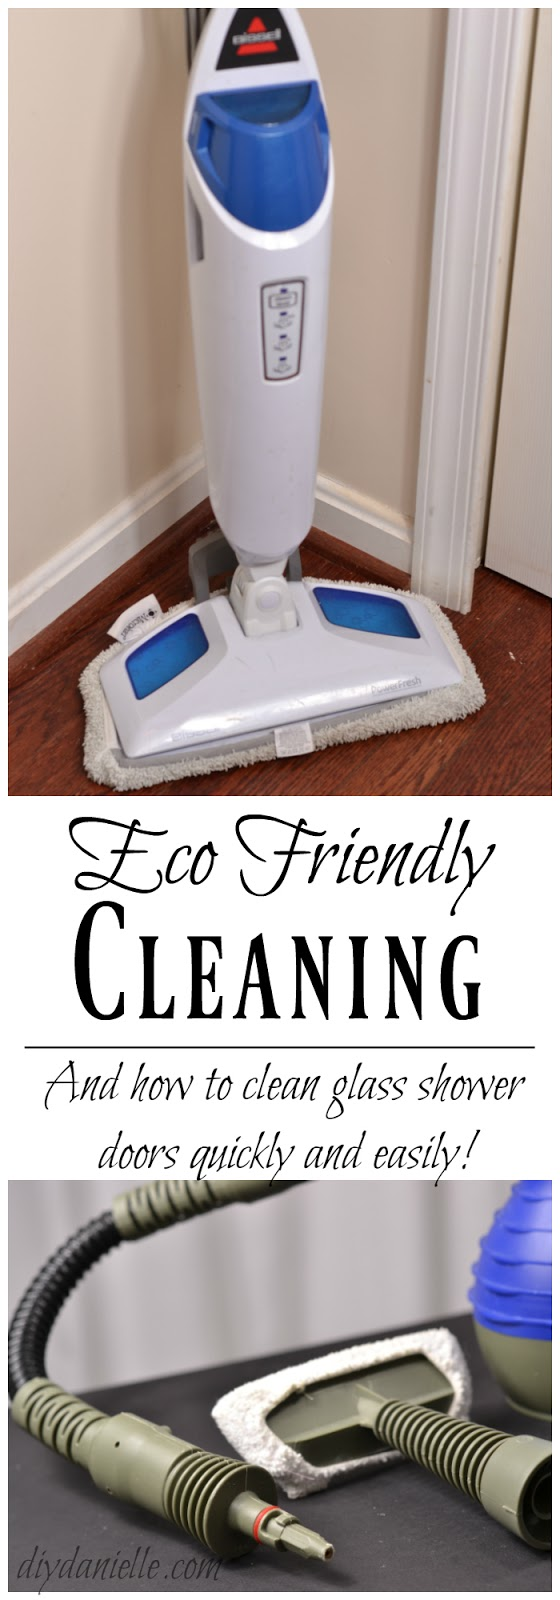 Green Cleaning Ideas for Regular People